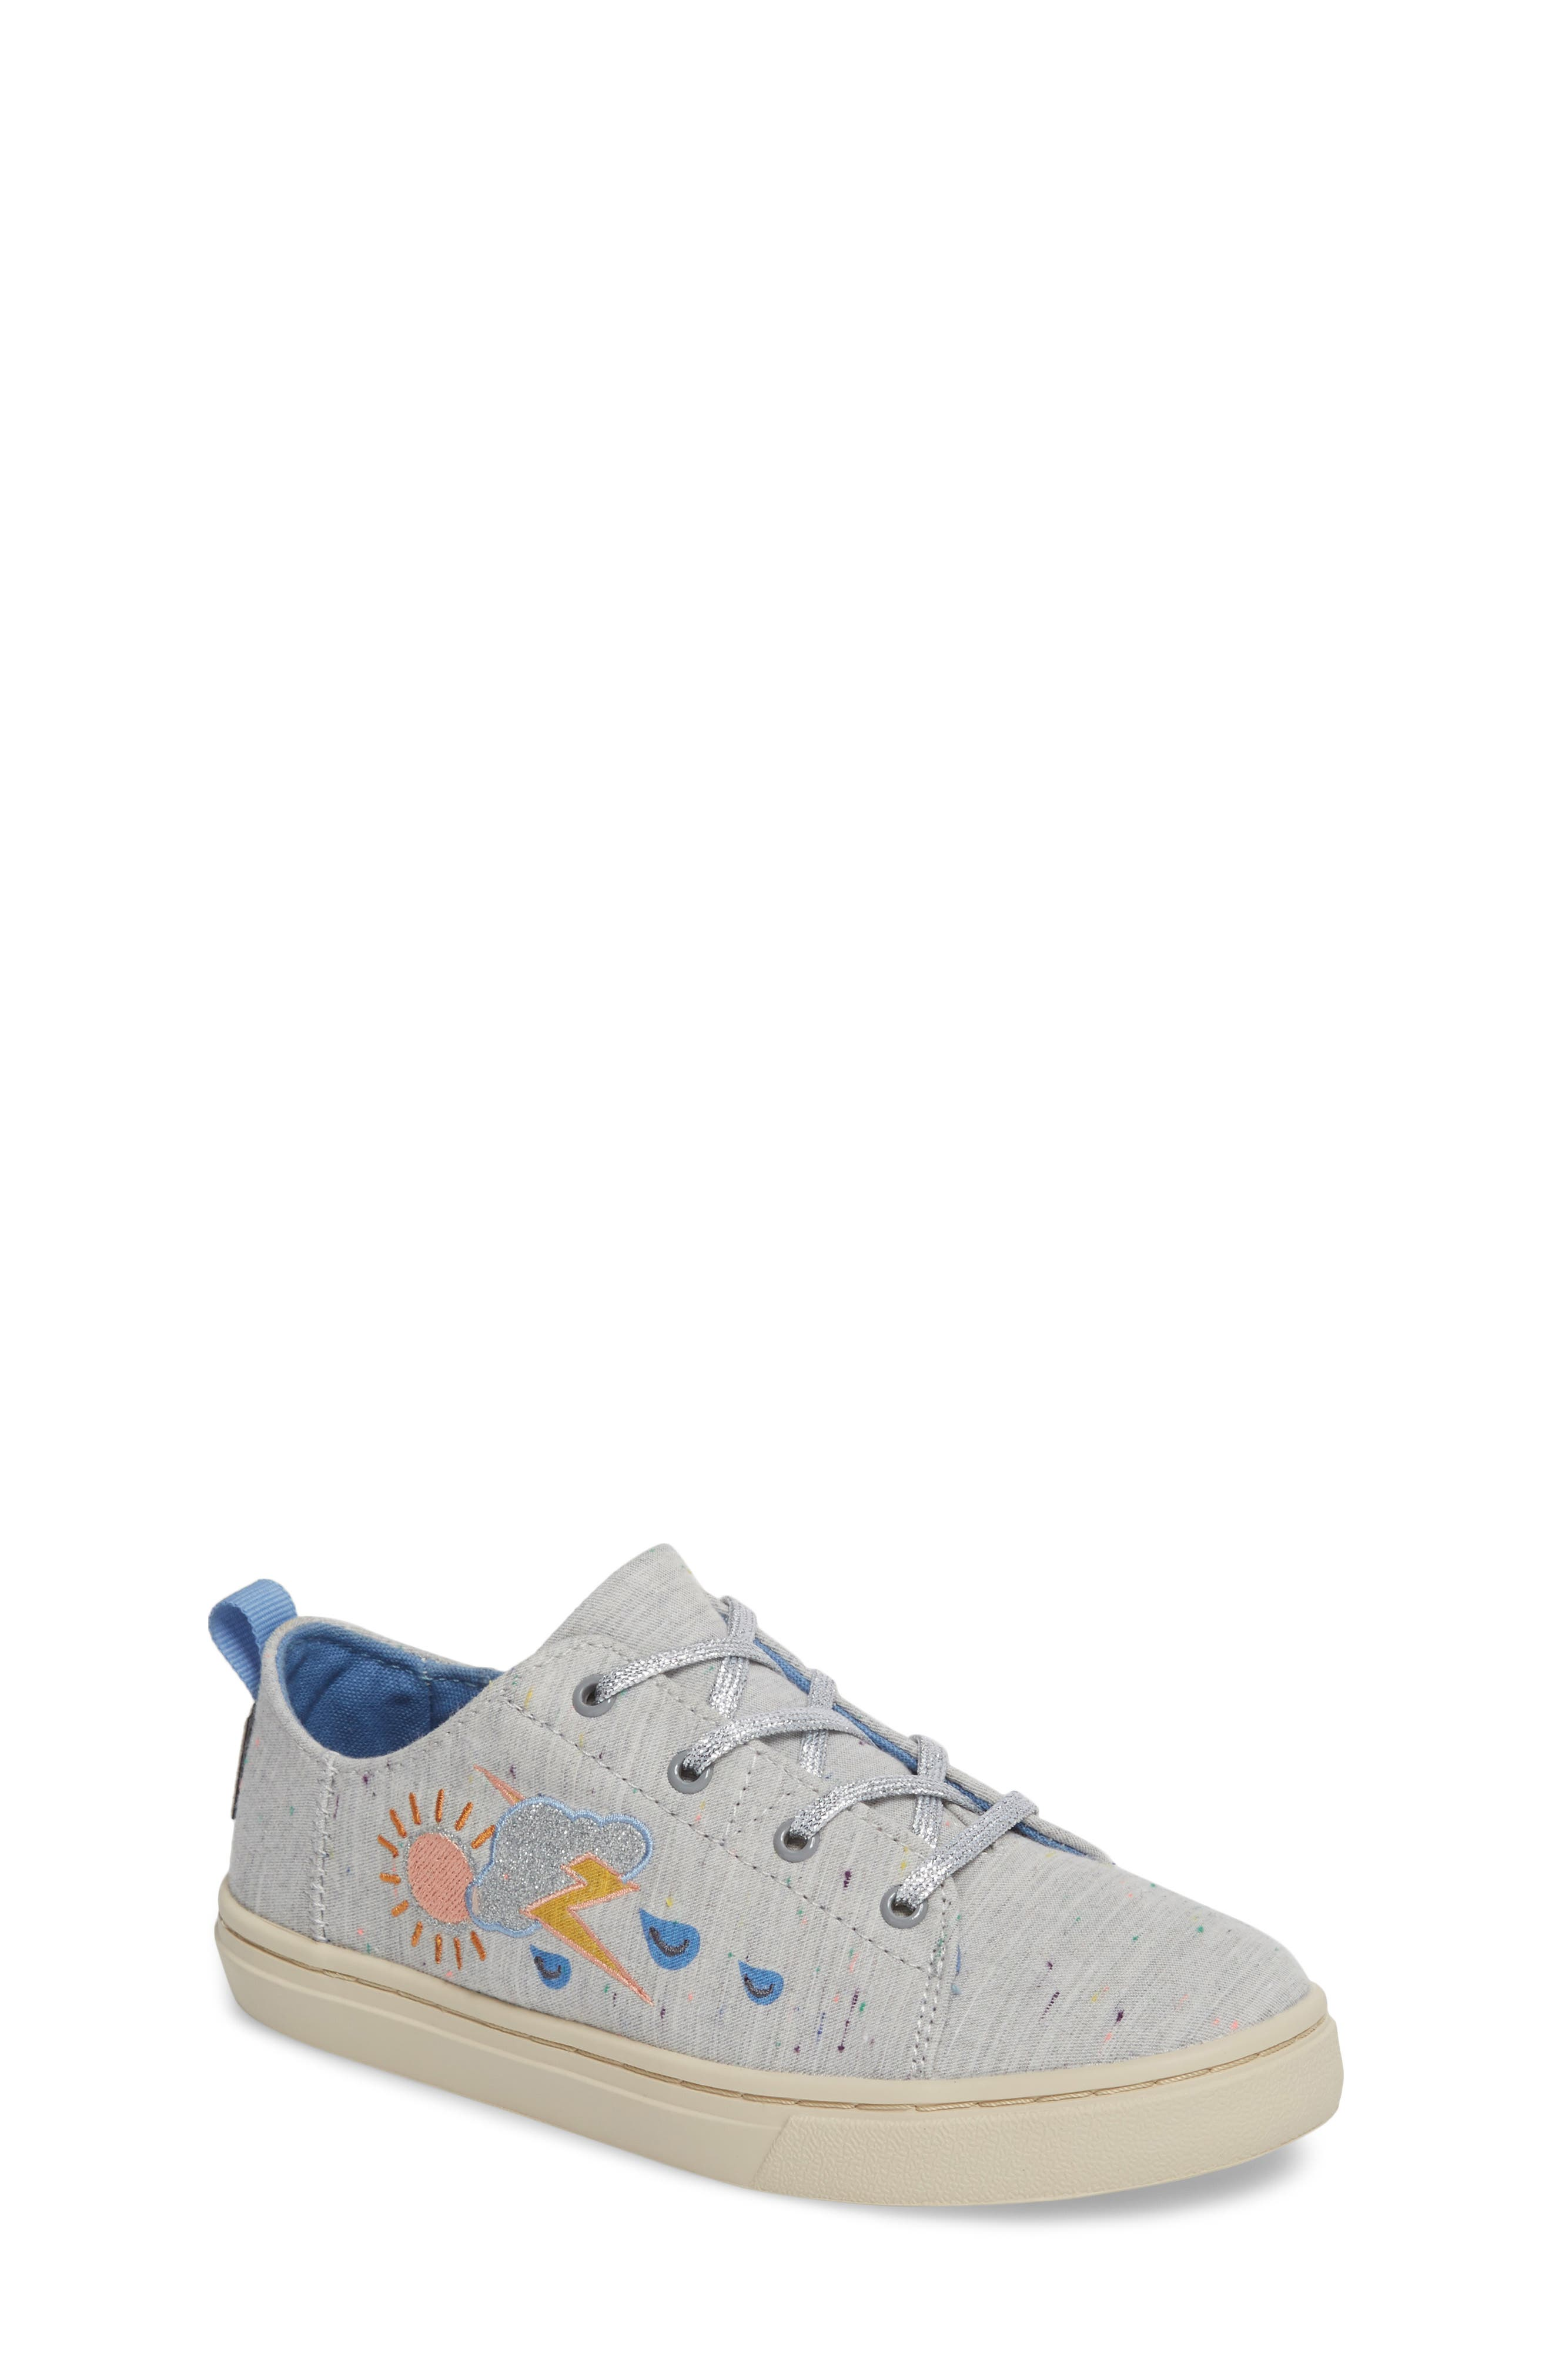 Lenny Embroidered Sneaker,                             Main thumbnail 1, color,                             Grey Multi Drizzly Weather